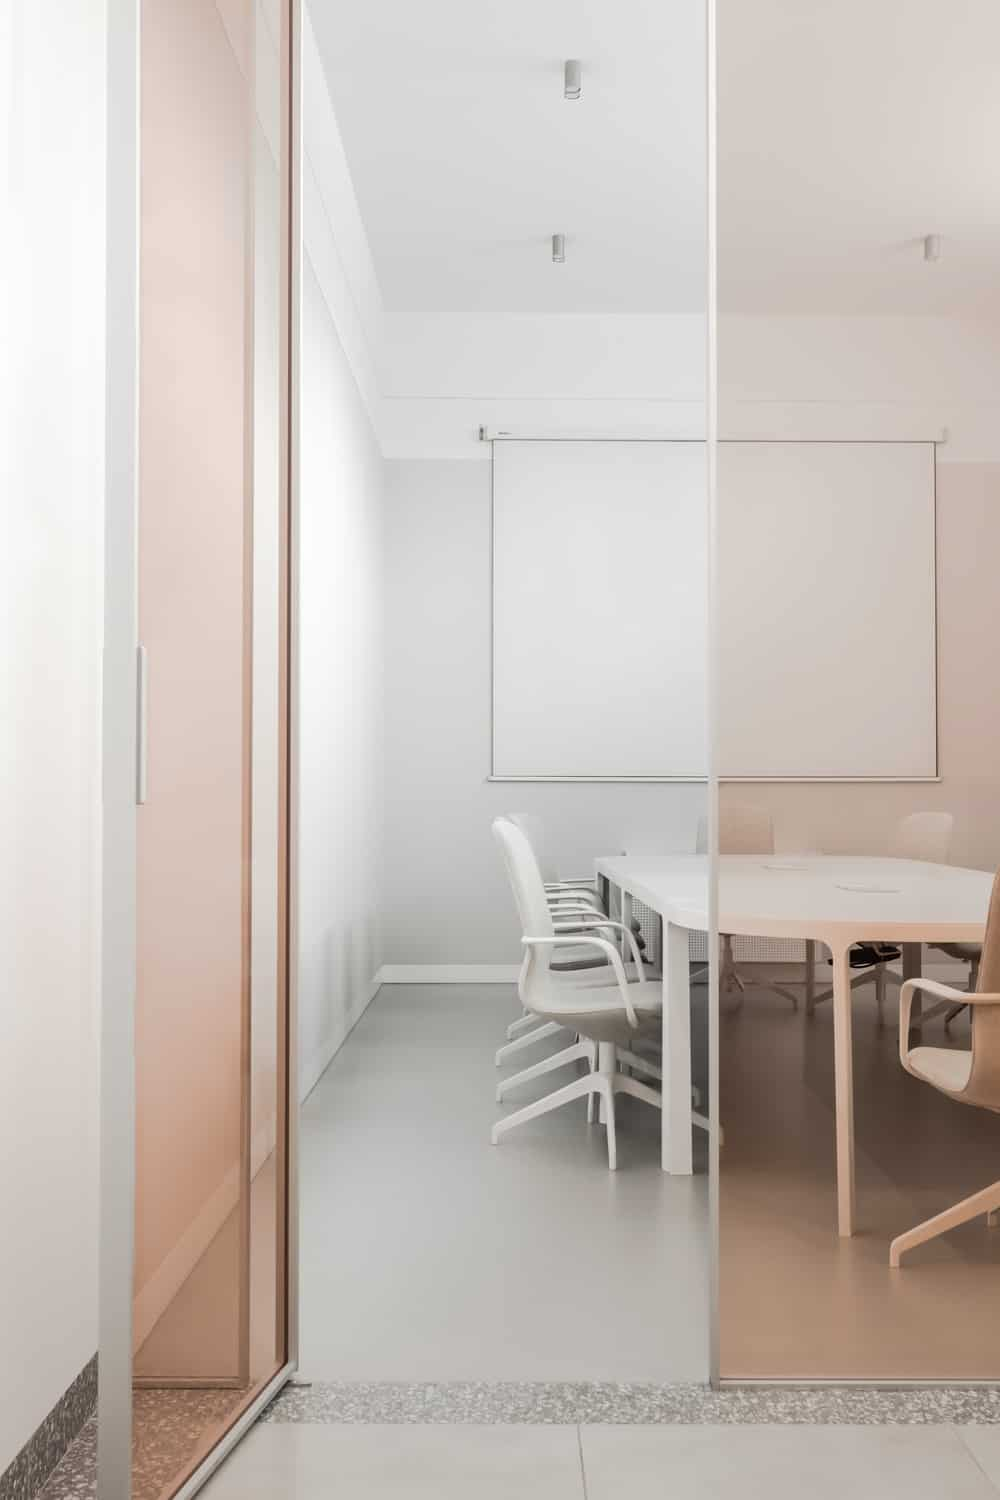 This is a closer look at the conference room with a set of white office chairs surrounding the large white conference table with a roll down projector screen at the far wall.